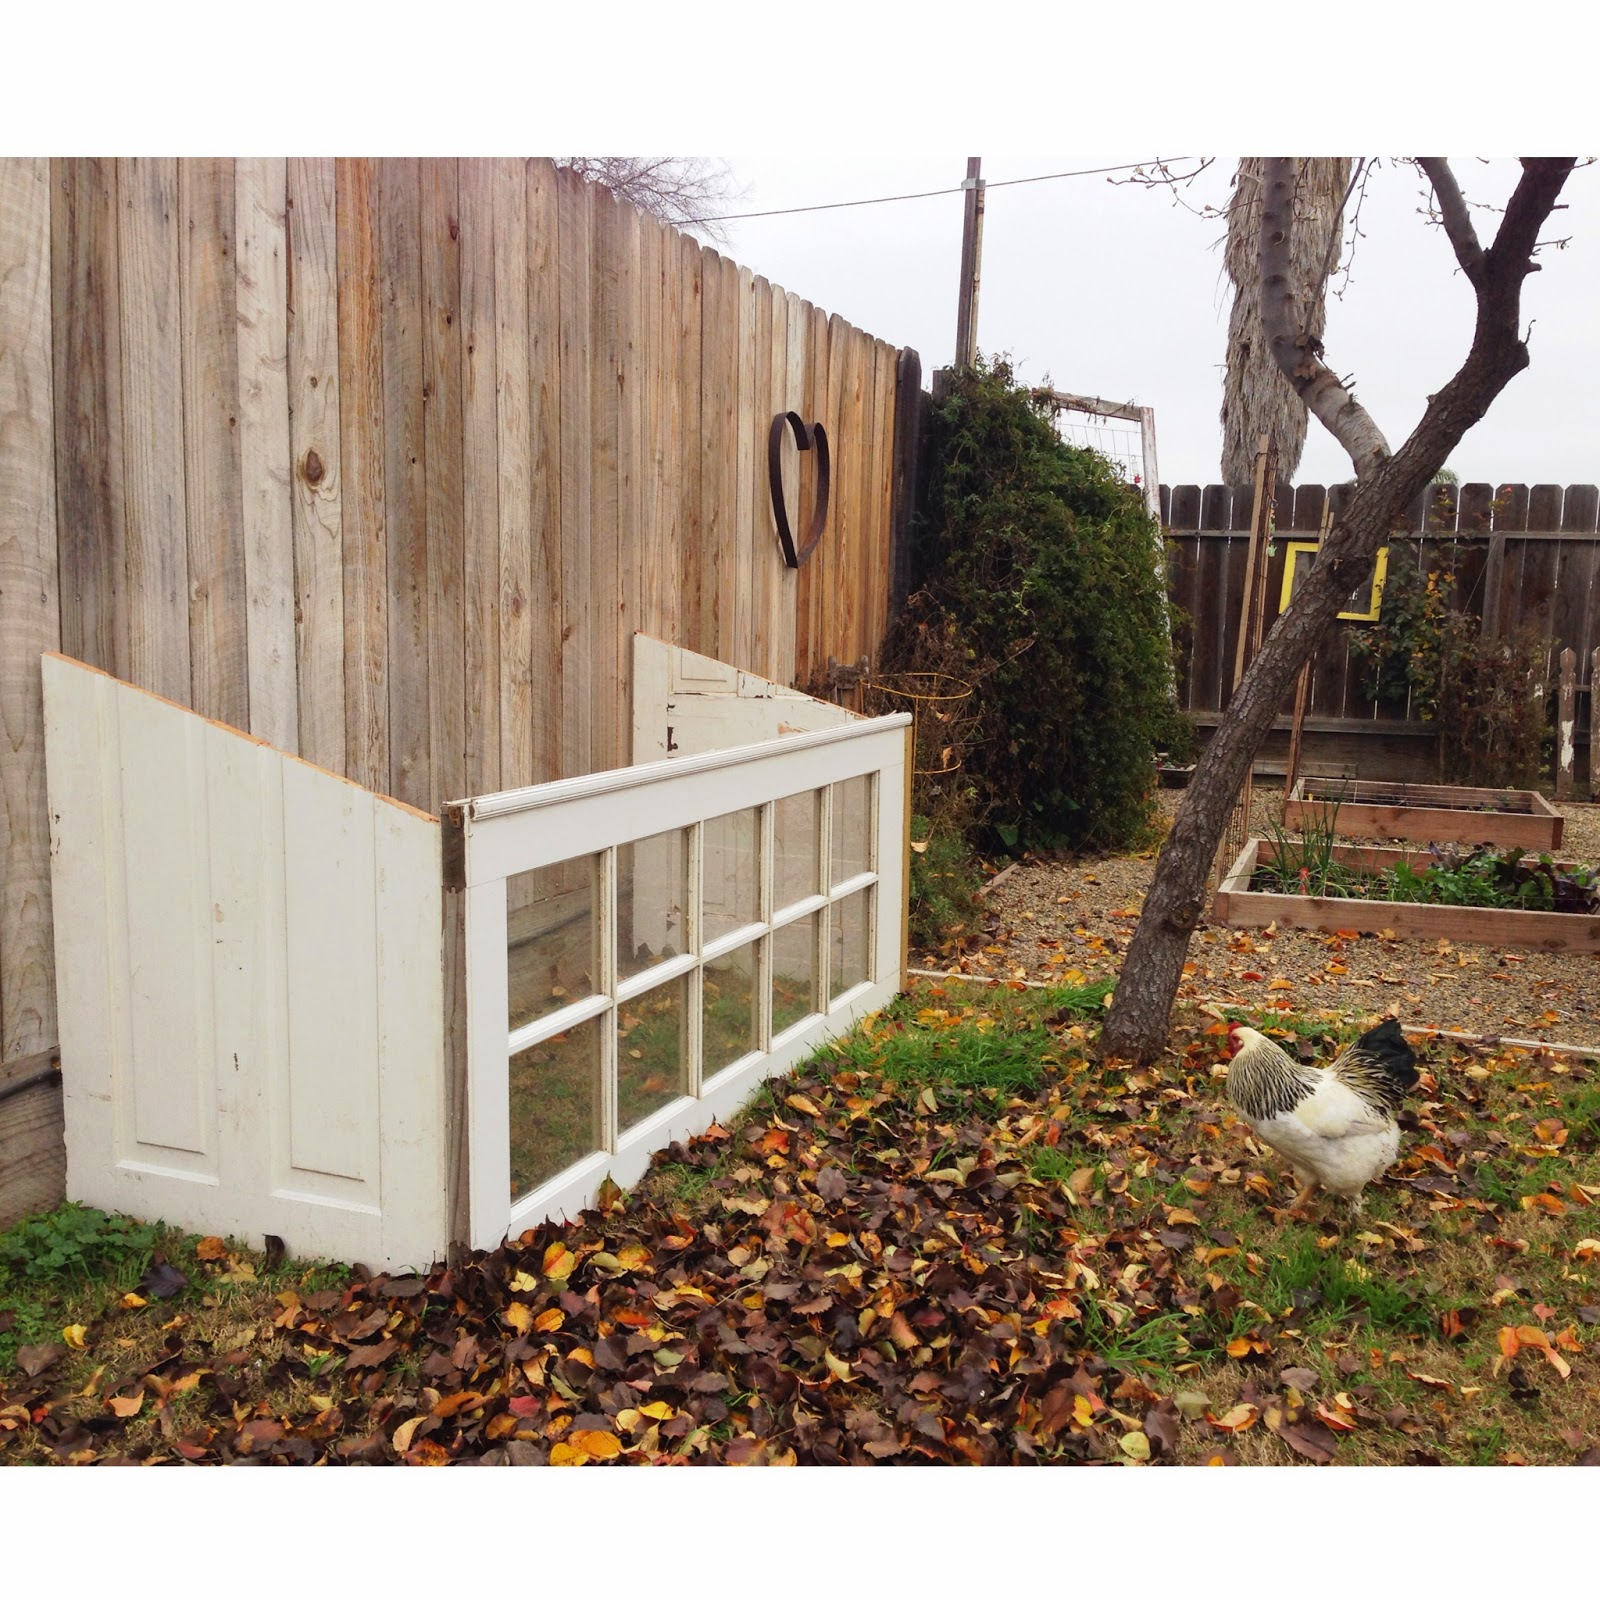 The Baeza Blog  sc 1 st  The Baeza Blog - Blogger & The Baeza Blog: Upcycled Greenhouse From Old Windows and Doors.